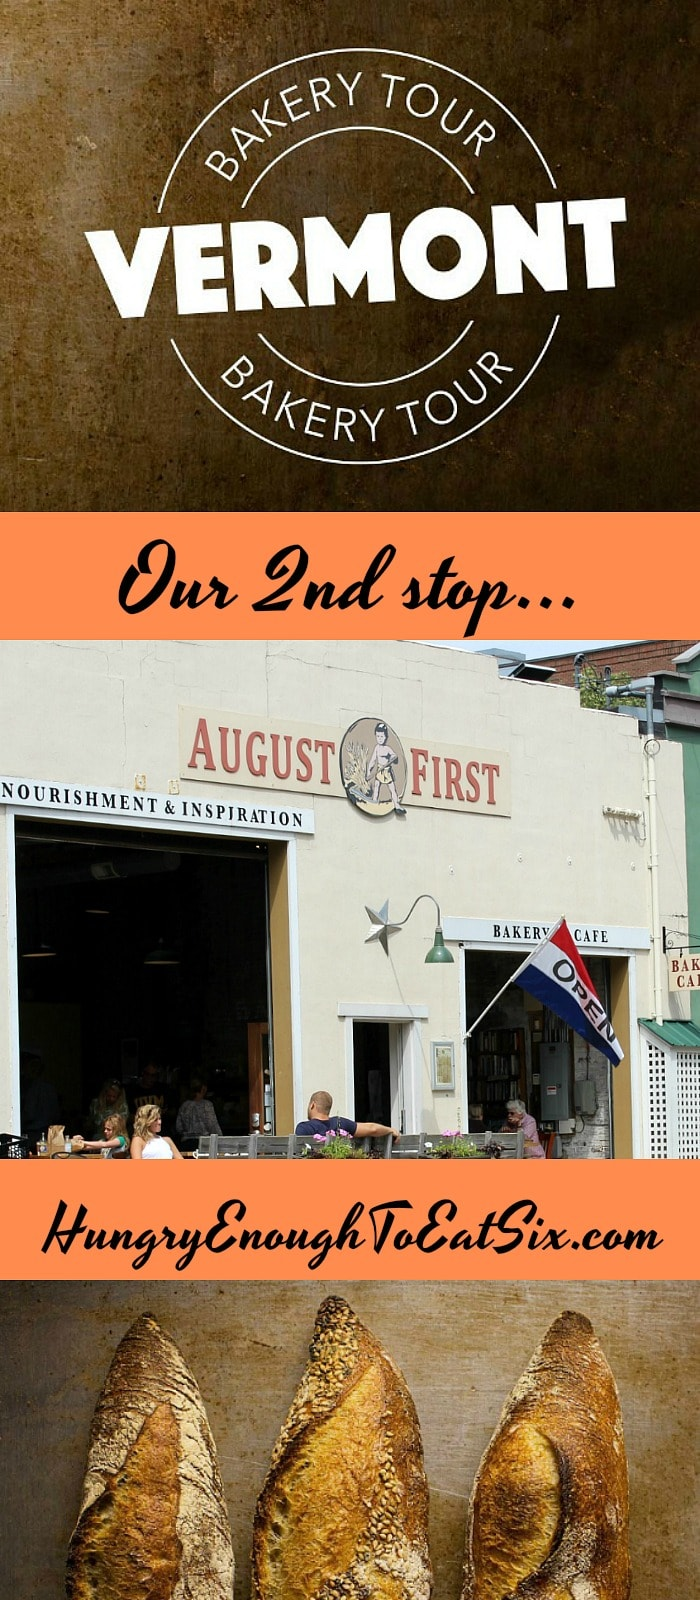 Delectable Destinations: August First Bakery: Our 2nd Stop on the Vermont Bakery Tour! Our second stop on the King Arthur Flour Vermont Bakery Tour: August First Bakery in downtown Burlington!